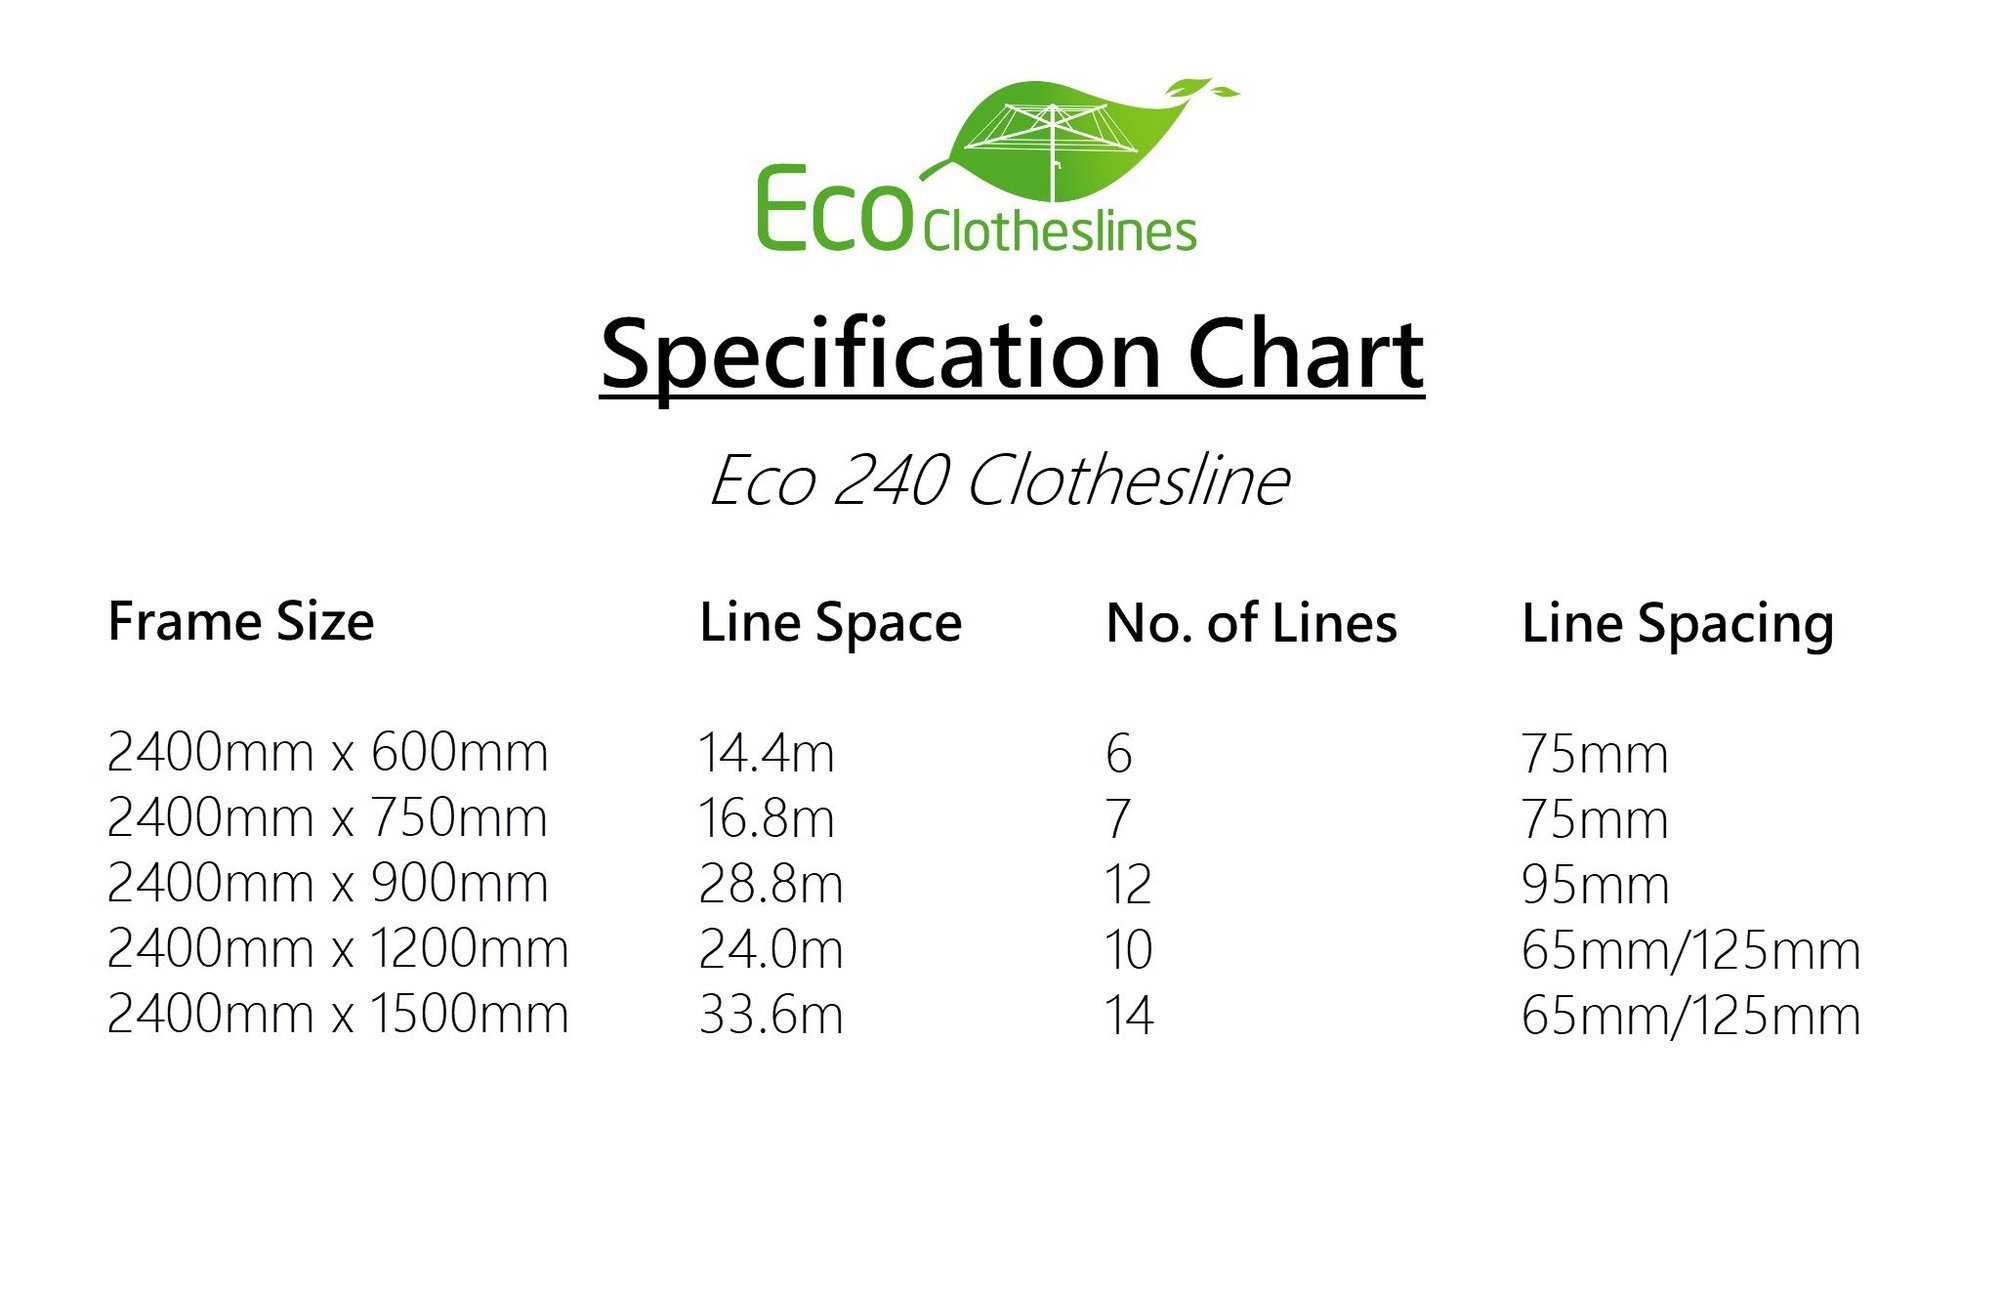 Eco 240 Clothesline Specification Chart